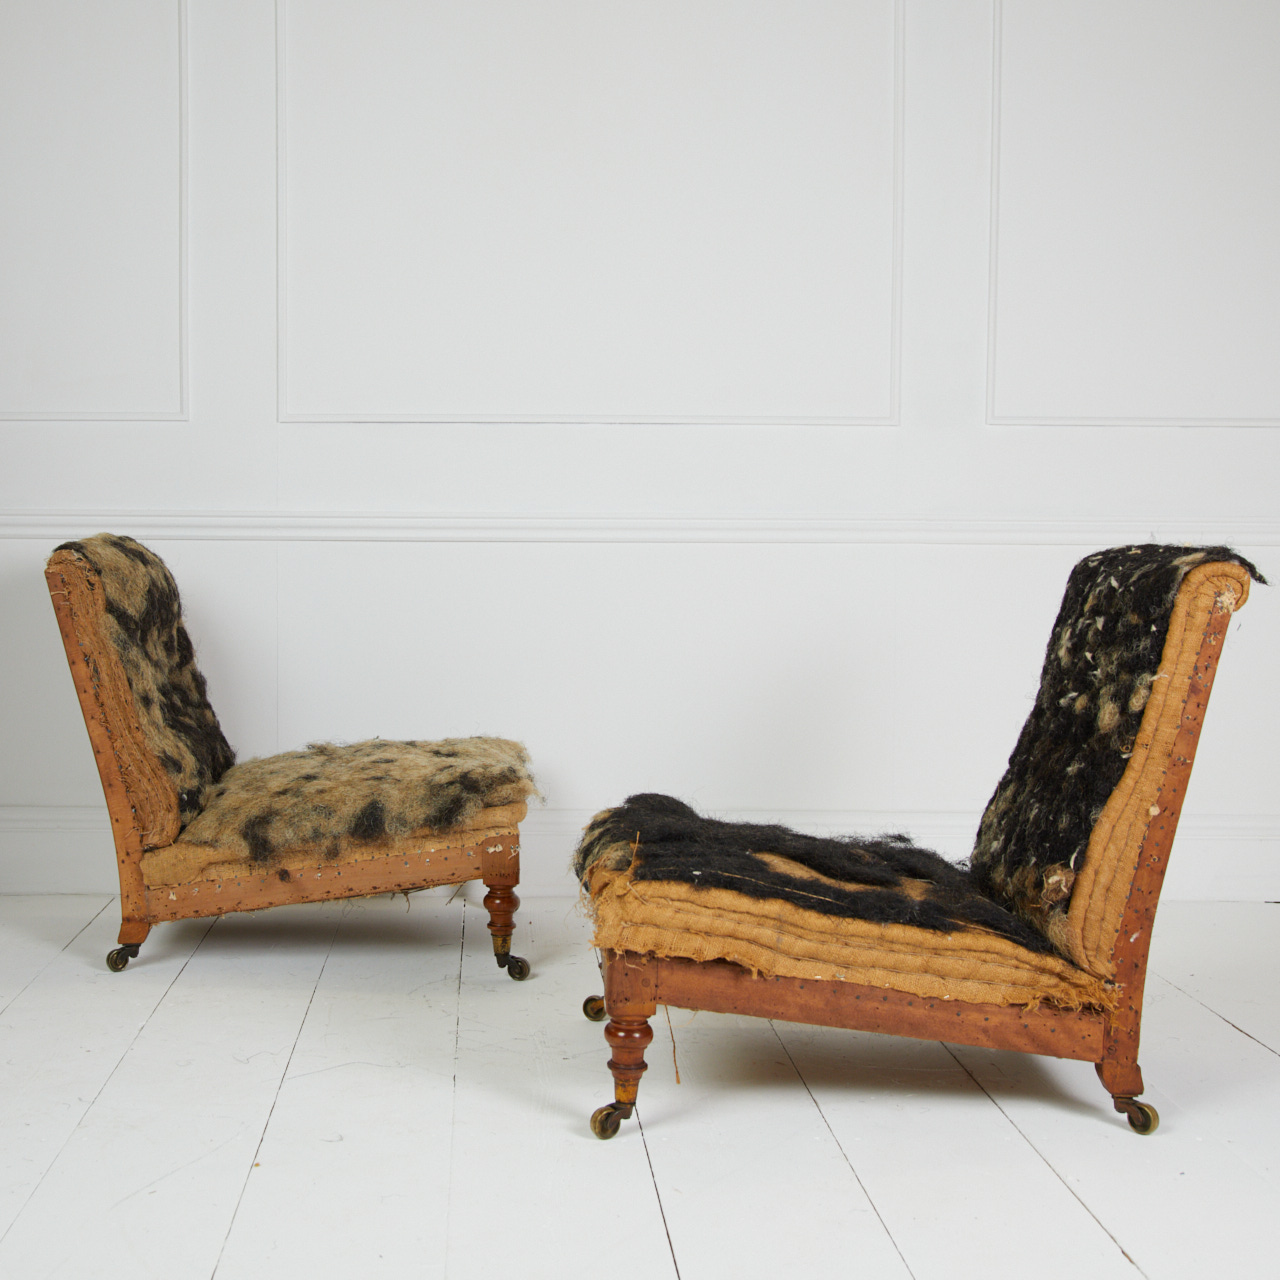 Howard and Sons chairs awaiting upholstery